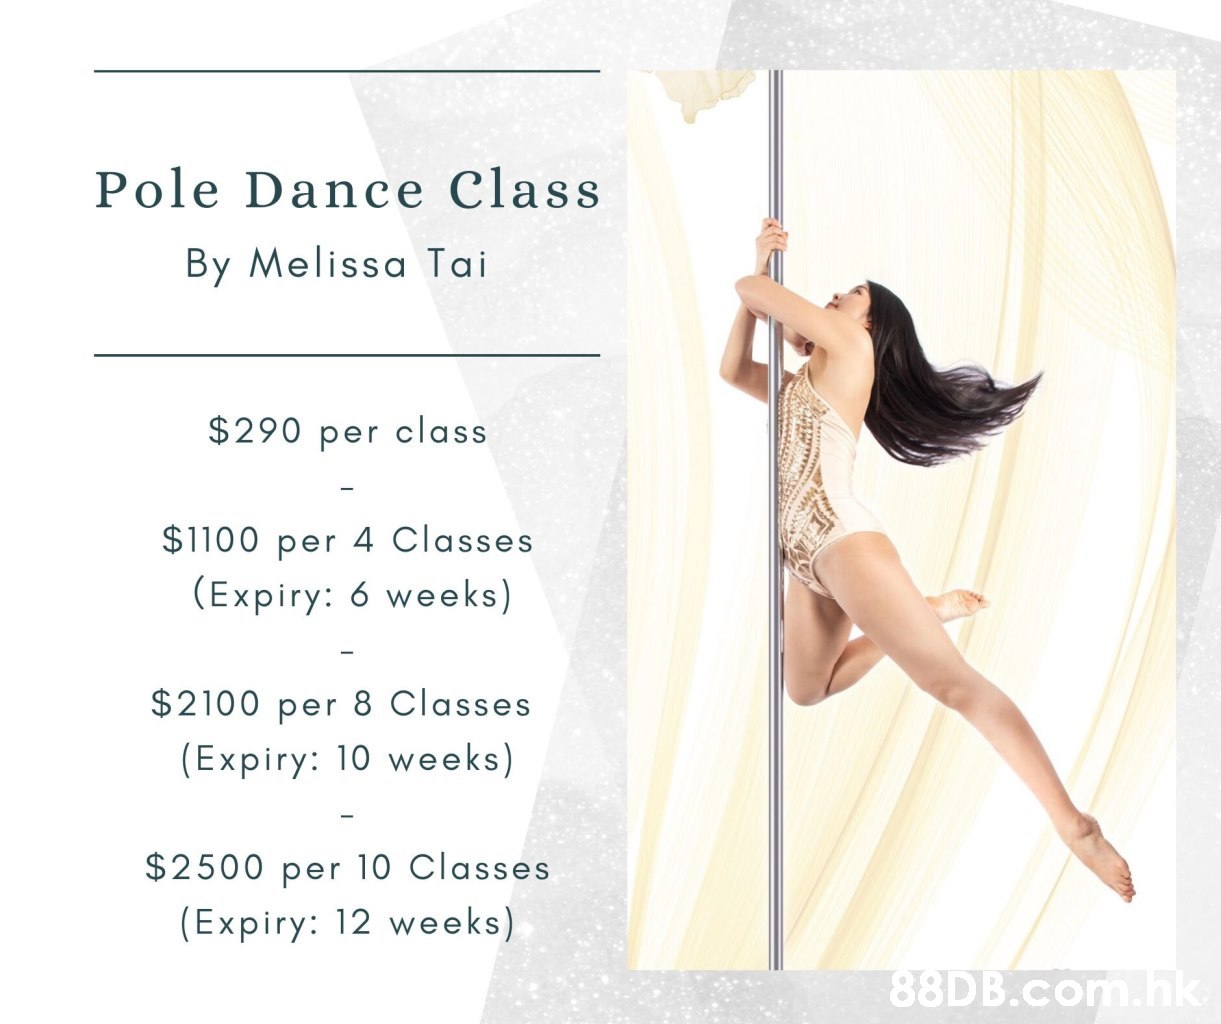 Pole Dance Class By Melissa Tai $290 class per $1100 per 4 Classes (Expiry: 6 weeks) $2100 per 8 Classes (Expiry: 10 weeks) $2500 per 10 Classes (Expiry: 12 weeks) .hk  Pole dance,Dance,Text,Performing arts,Event